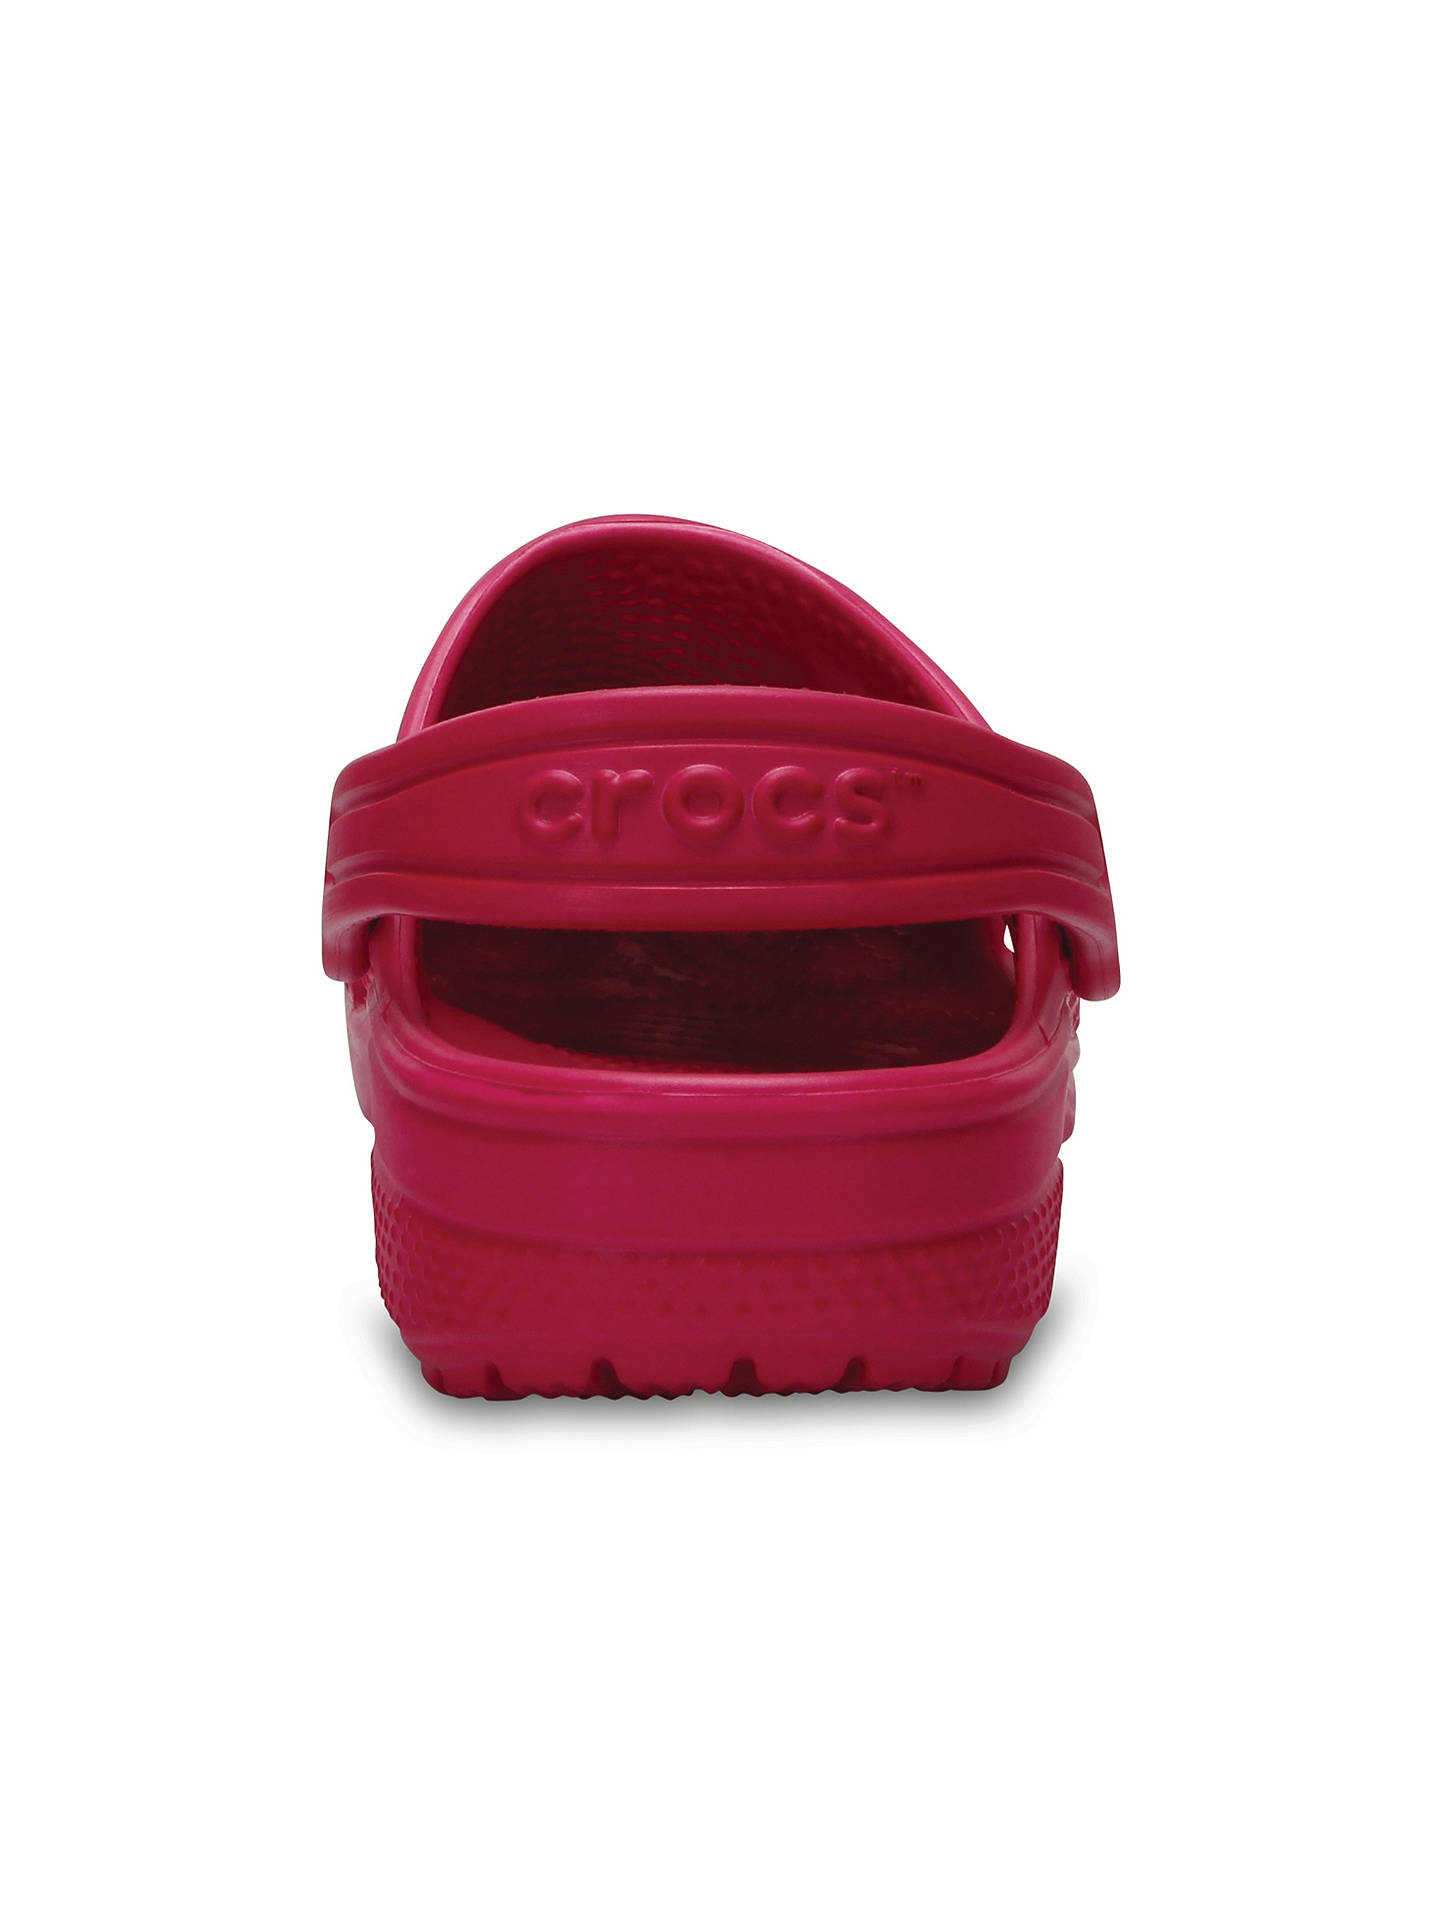 4e929f857328f Crocs Children s Classic Croc Clogs at John Lewis   Partners